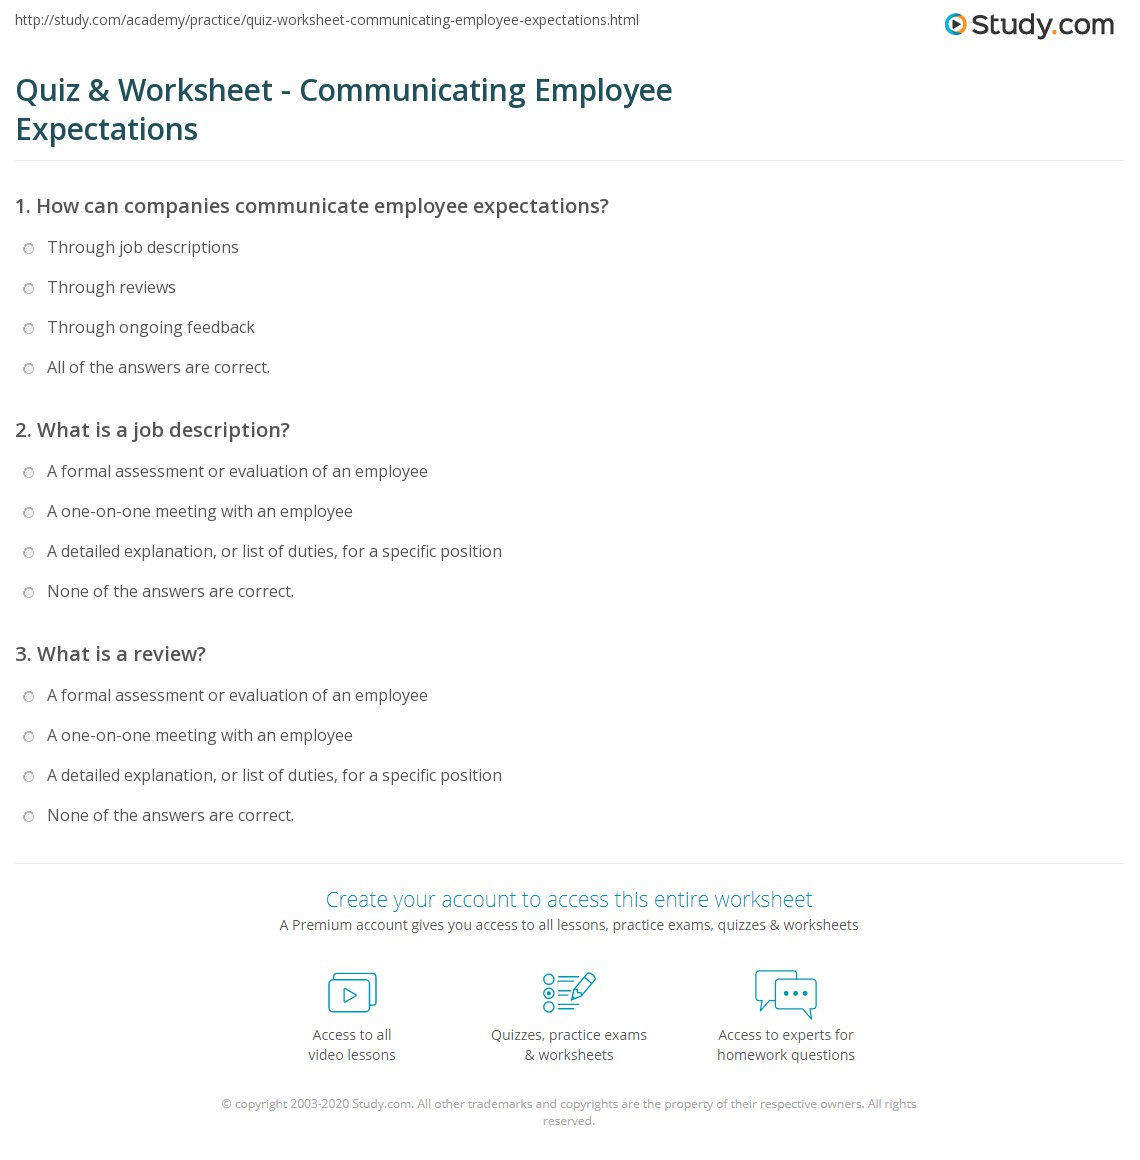 Quiz & Worksheet - Communicating Employee Expectations | Study.com